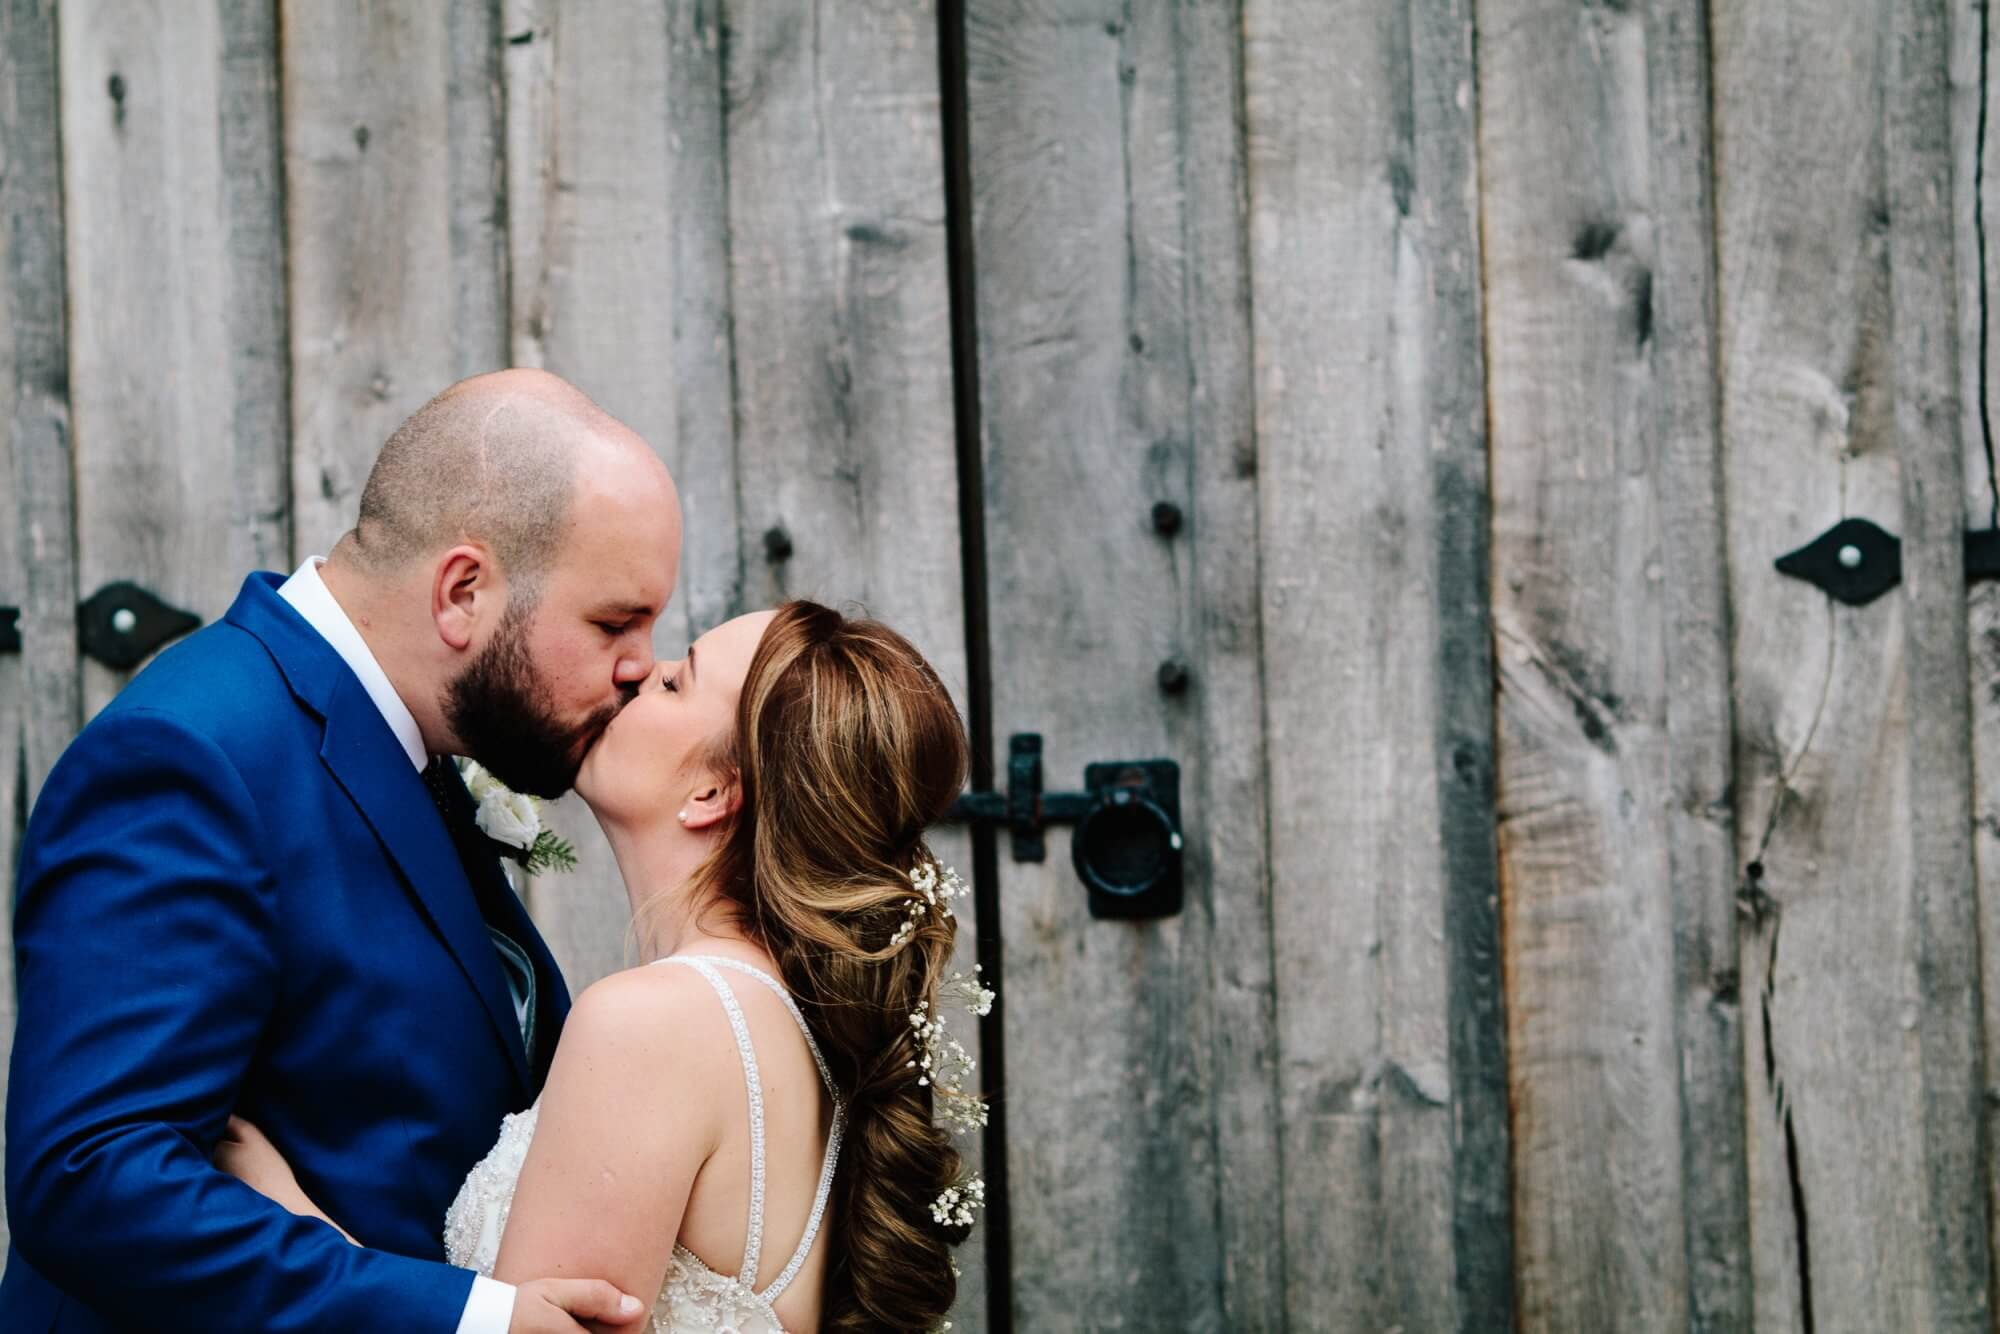 Wedding Photography East Grinstead: DIY Yoghurt Rooms Wedding With Sharp Suits, Taxis And Ice